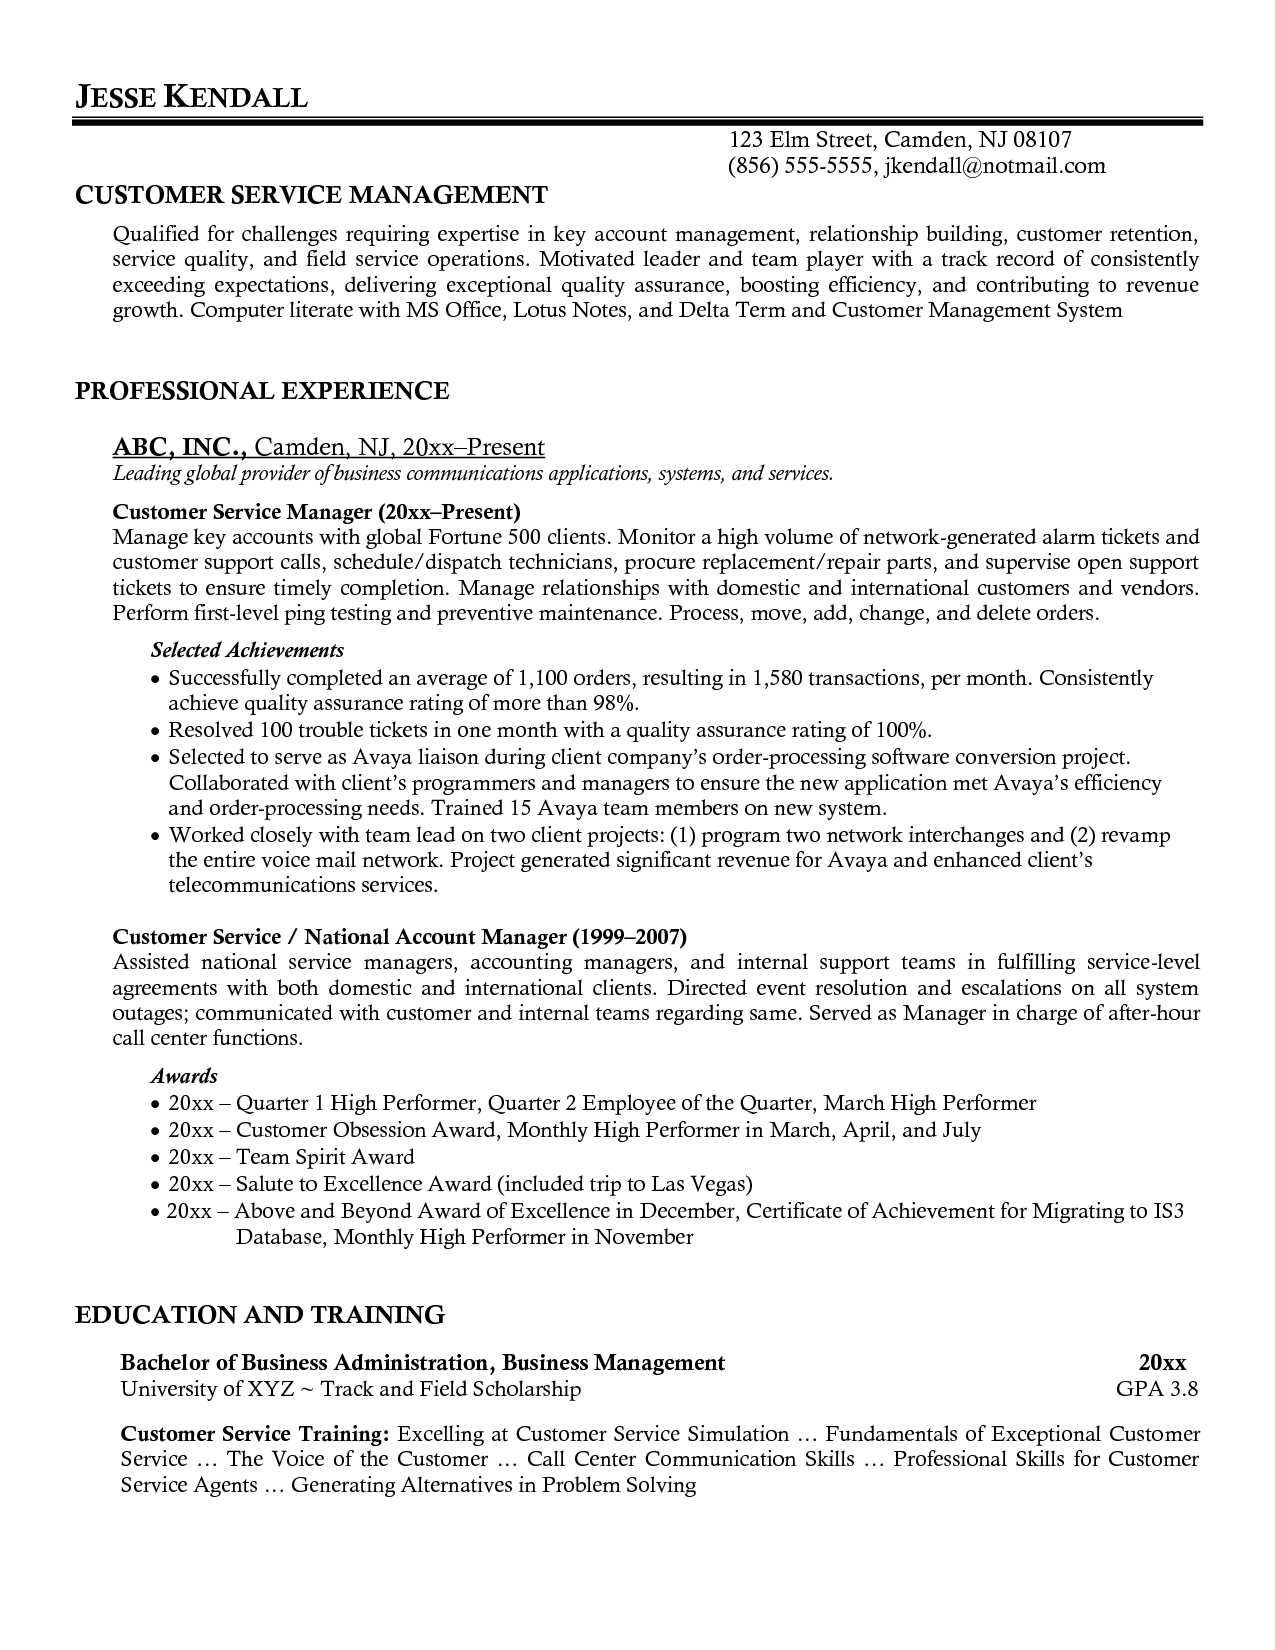 Executive Format Resume Template Certified Professional Resume Writers Canada Executive Application